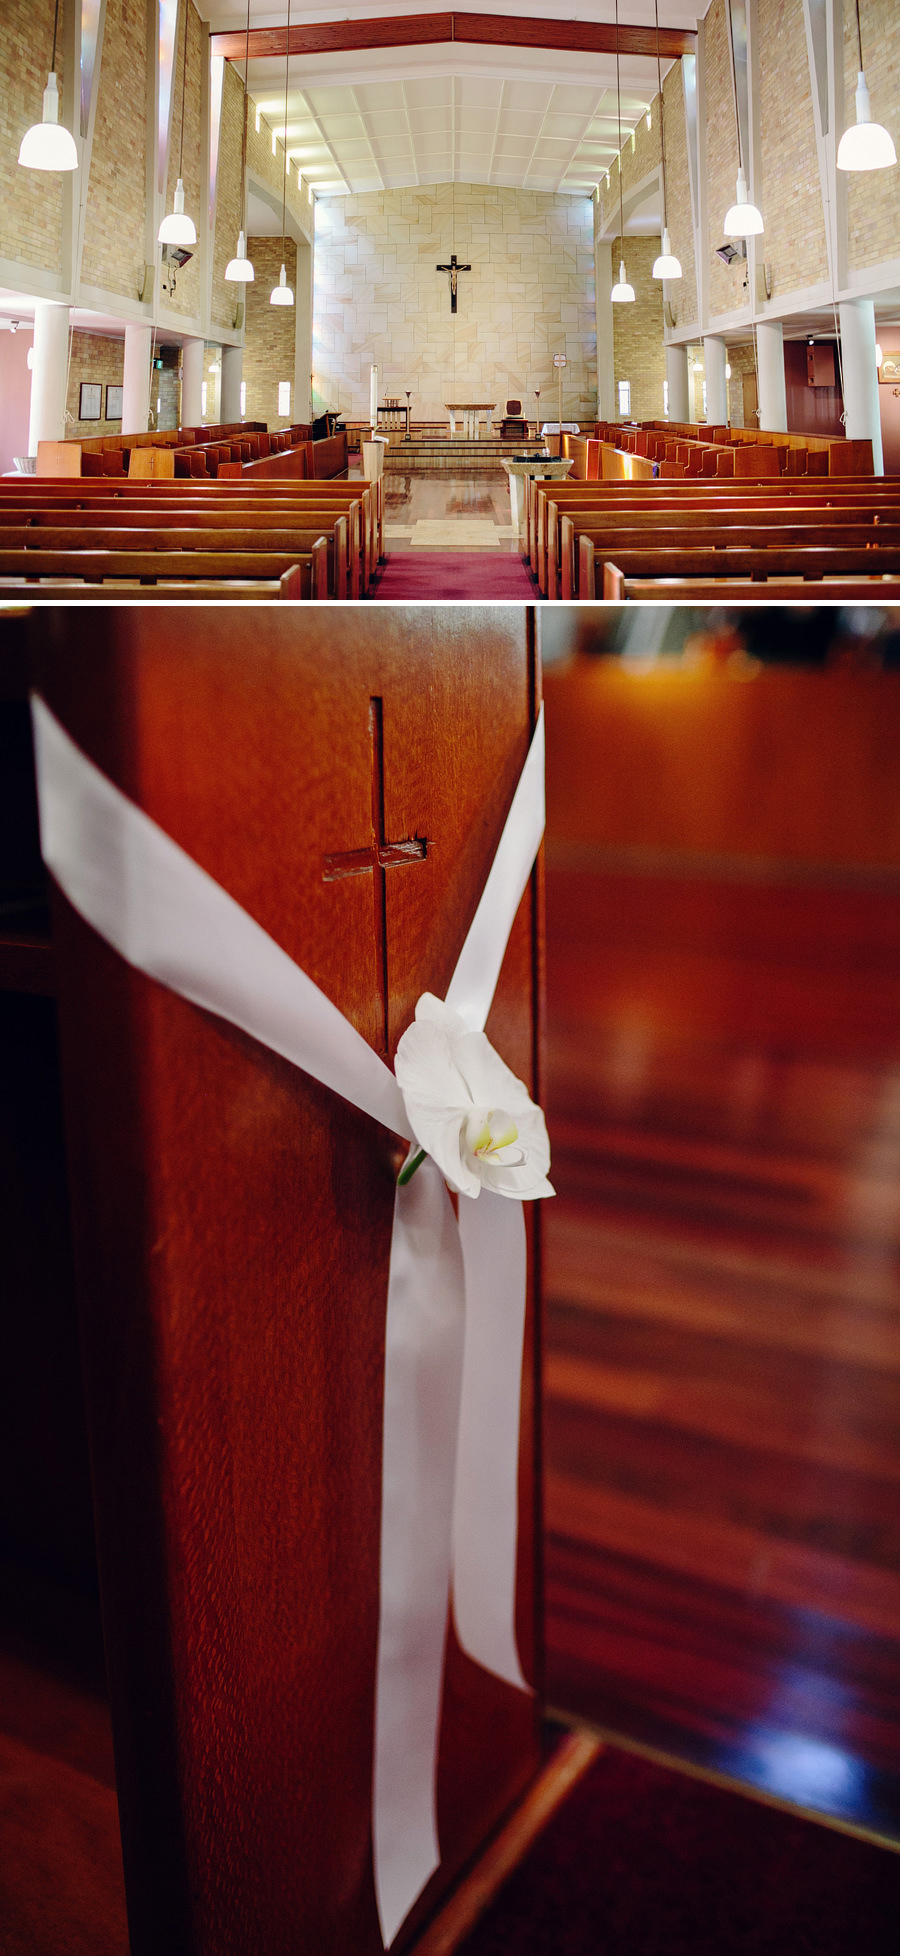 Strathfield Wedding Photographer: Church details